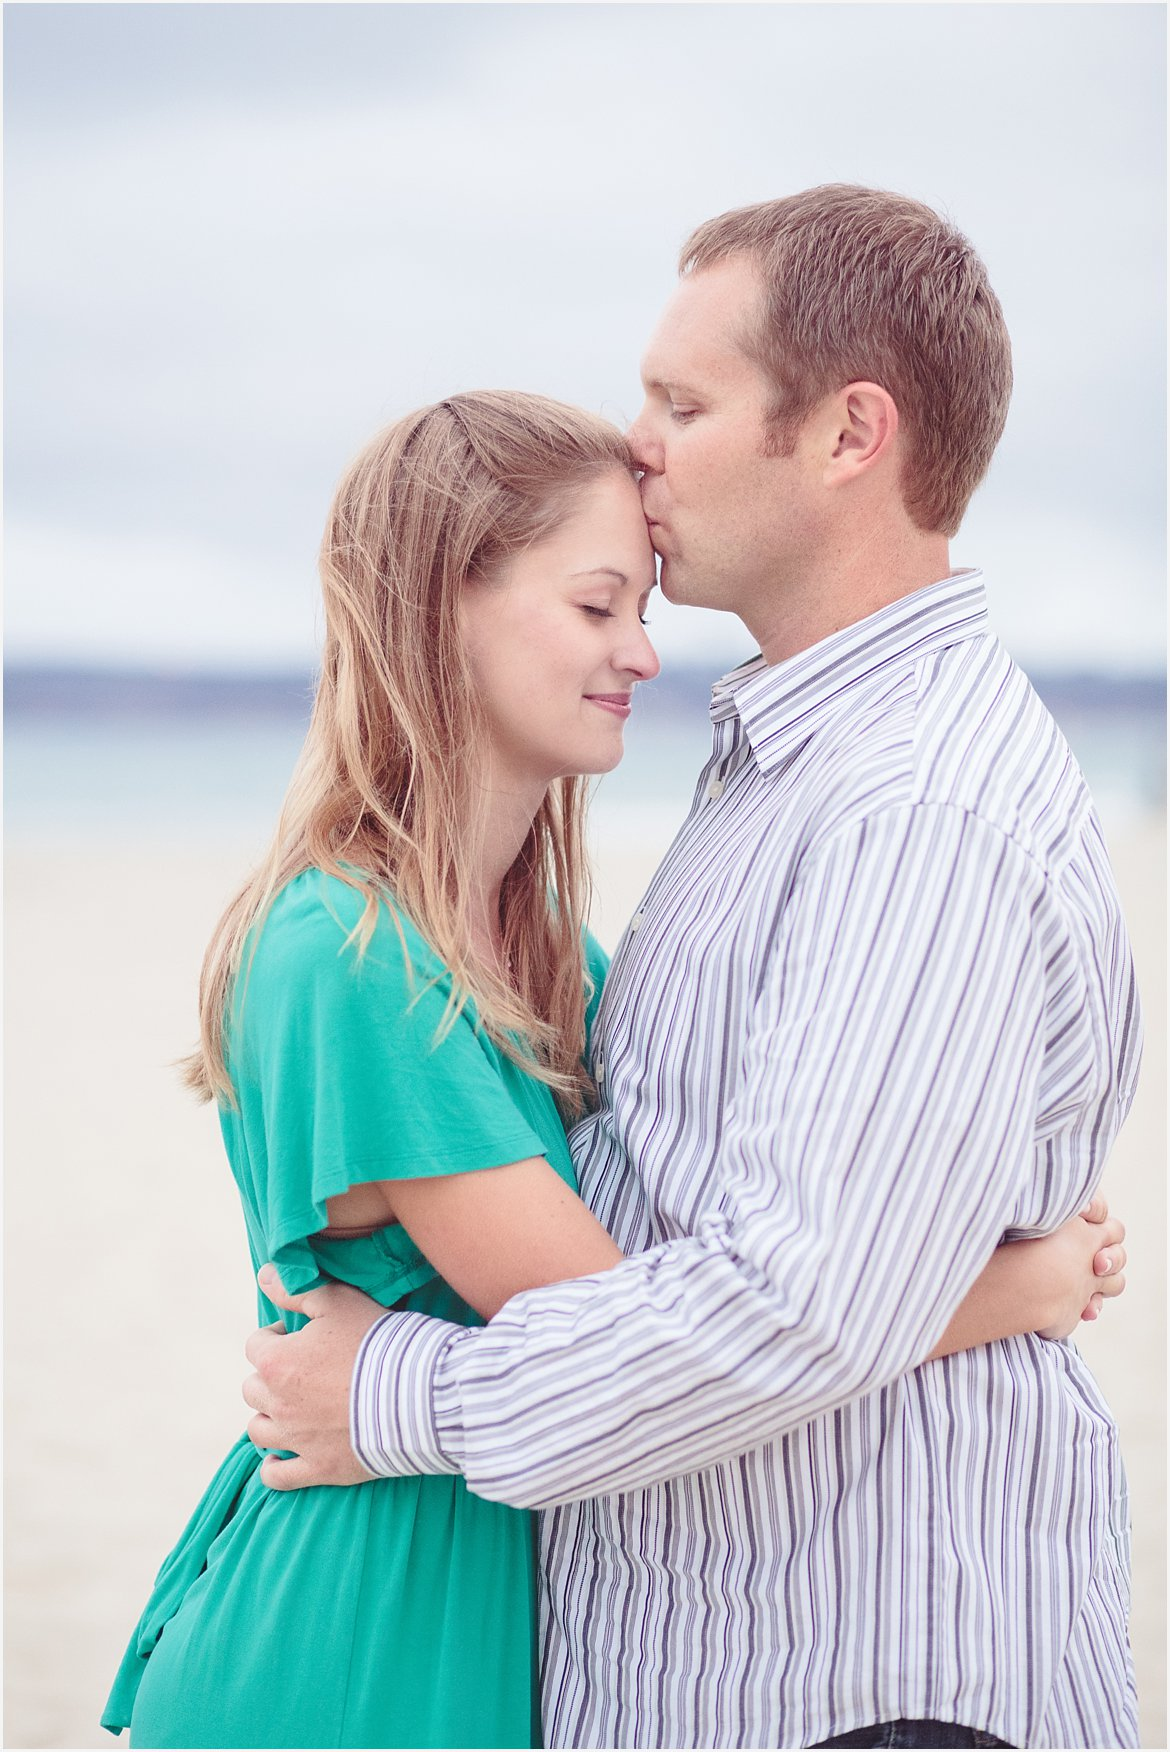 Engagement Photography | Beach Photography in San Diego